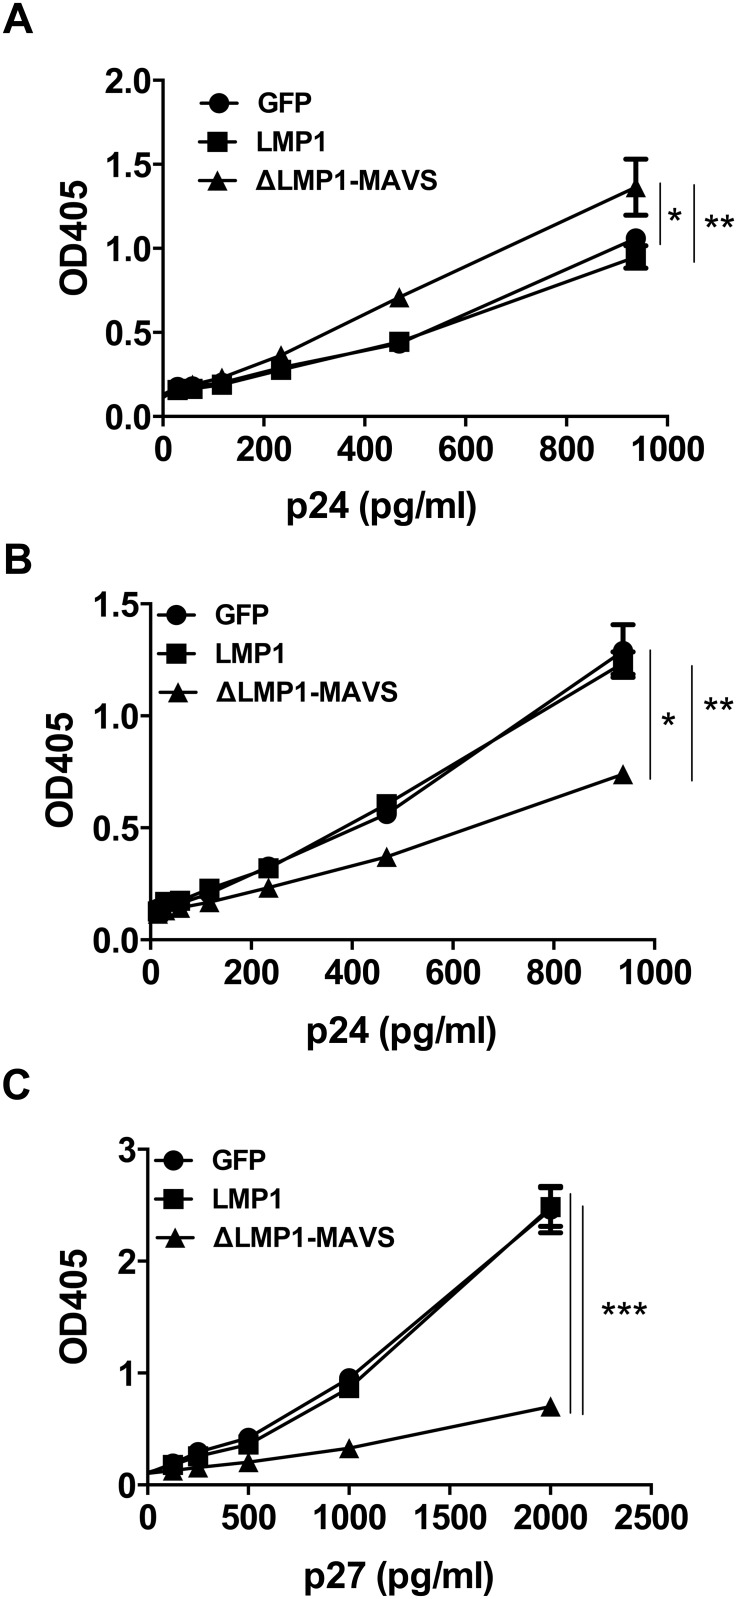 Exosome-depleted 293T supernatant inhibits HIV and SIV replication. 293T cells were transfected with pcDNA3.1 plasmids encoding GFP, LMP1, or ΔLMP1-MAVS and supernatant was isolated. Supernatant was depleted of exosomes by ultracentrifugation. (A) TZM-bl cells were cultured with isolated exosomes and infected with increasing concentrations of HIV-1 BaL. (B) TZM-bl cells were cultured with exosome-depleted supernatant, followed by infection with HIV-1 BaL. (C) TZM-bl cells were cultured with exosome-depleted supernatant, followed by infection with VSV-G pseudotyped single cycle SIV. *p